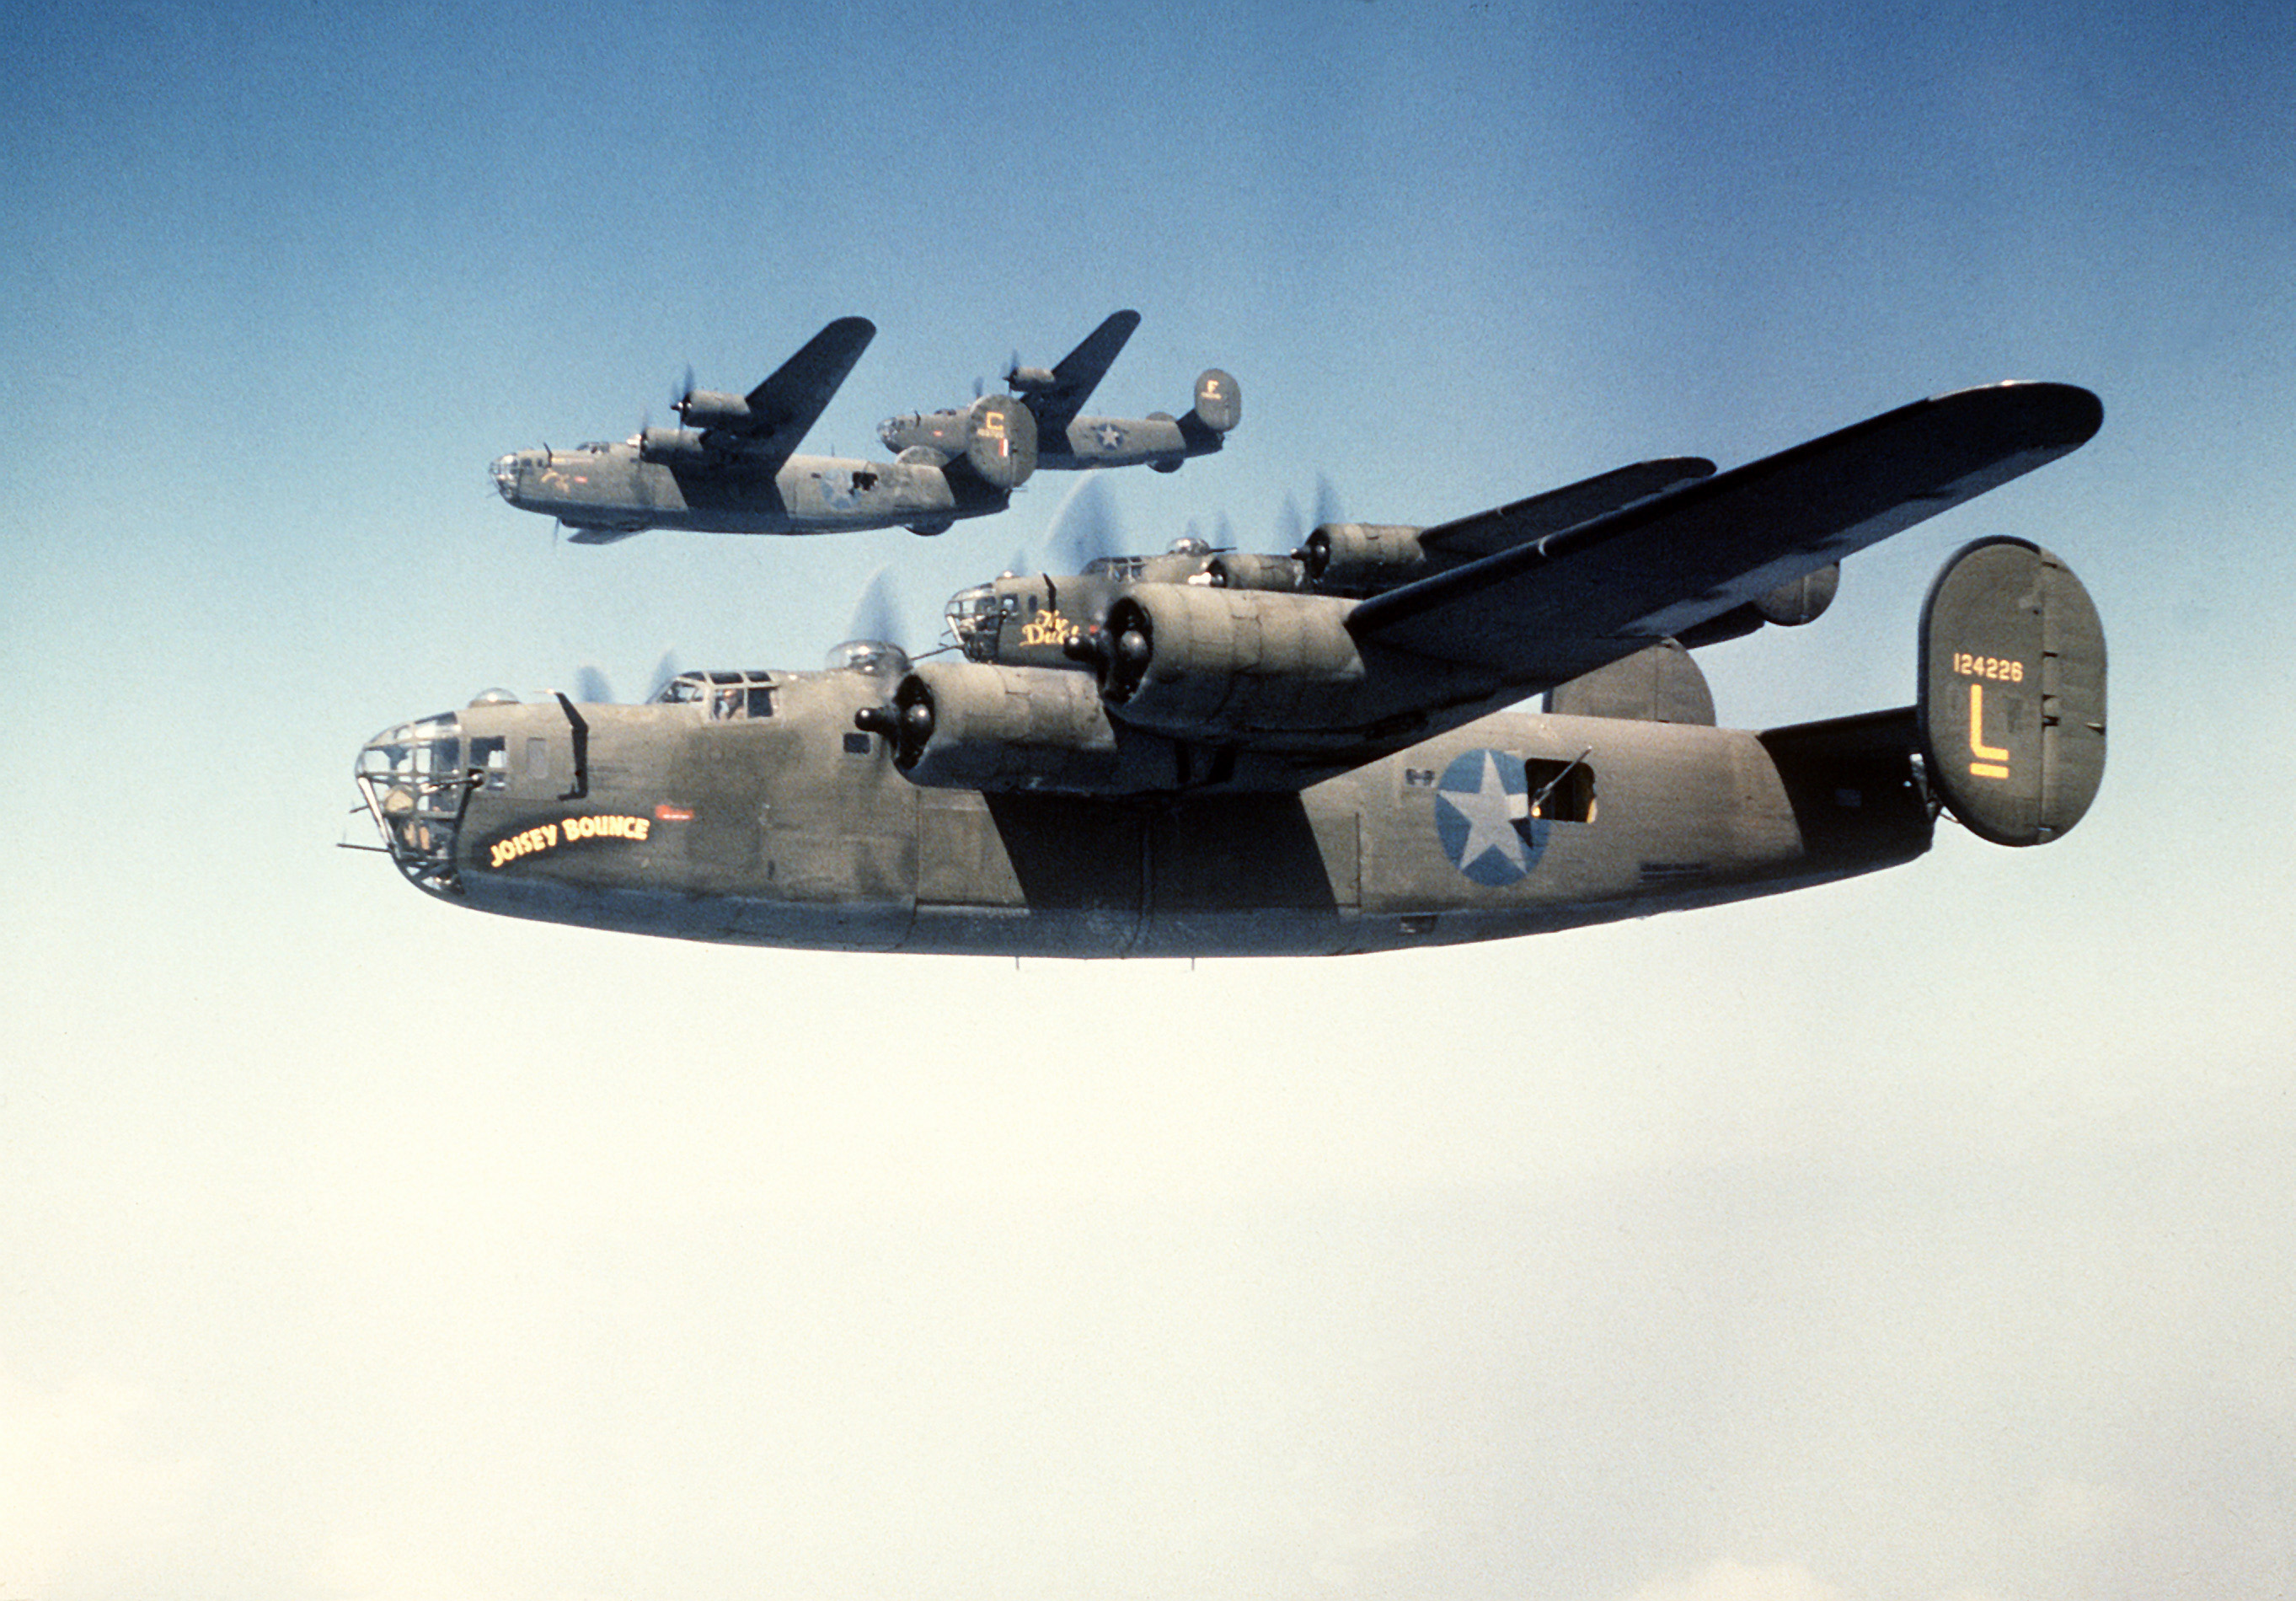 93rd Bomb Group formation flight. Near aircraft is Consolidated B-24D-25-CO (S/N 41-24226)